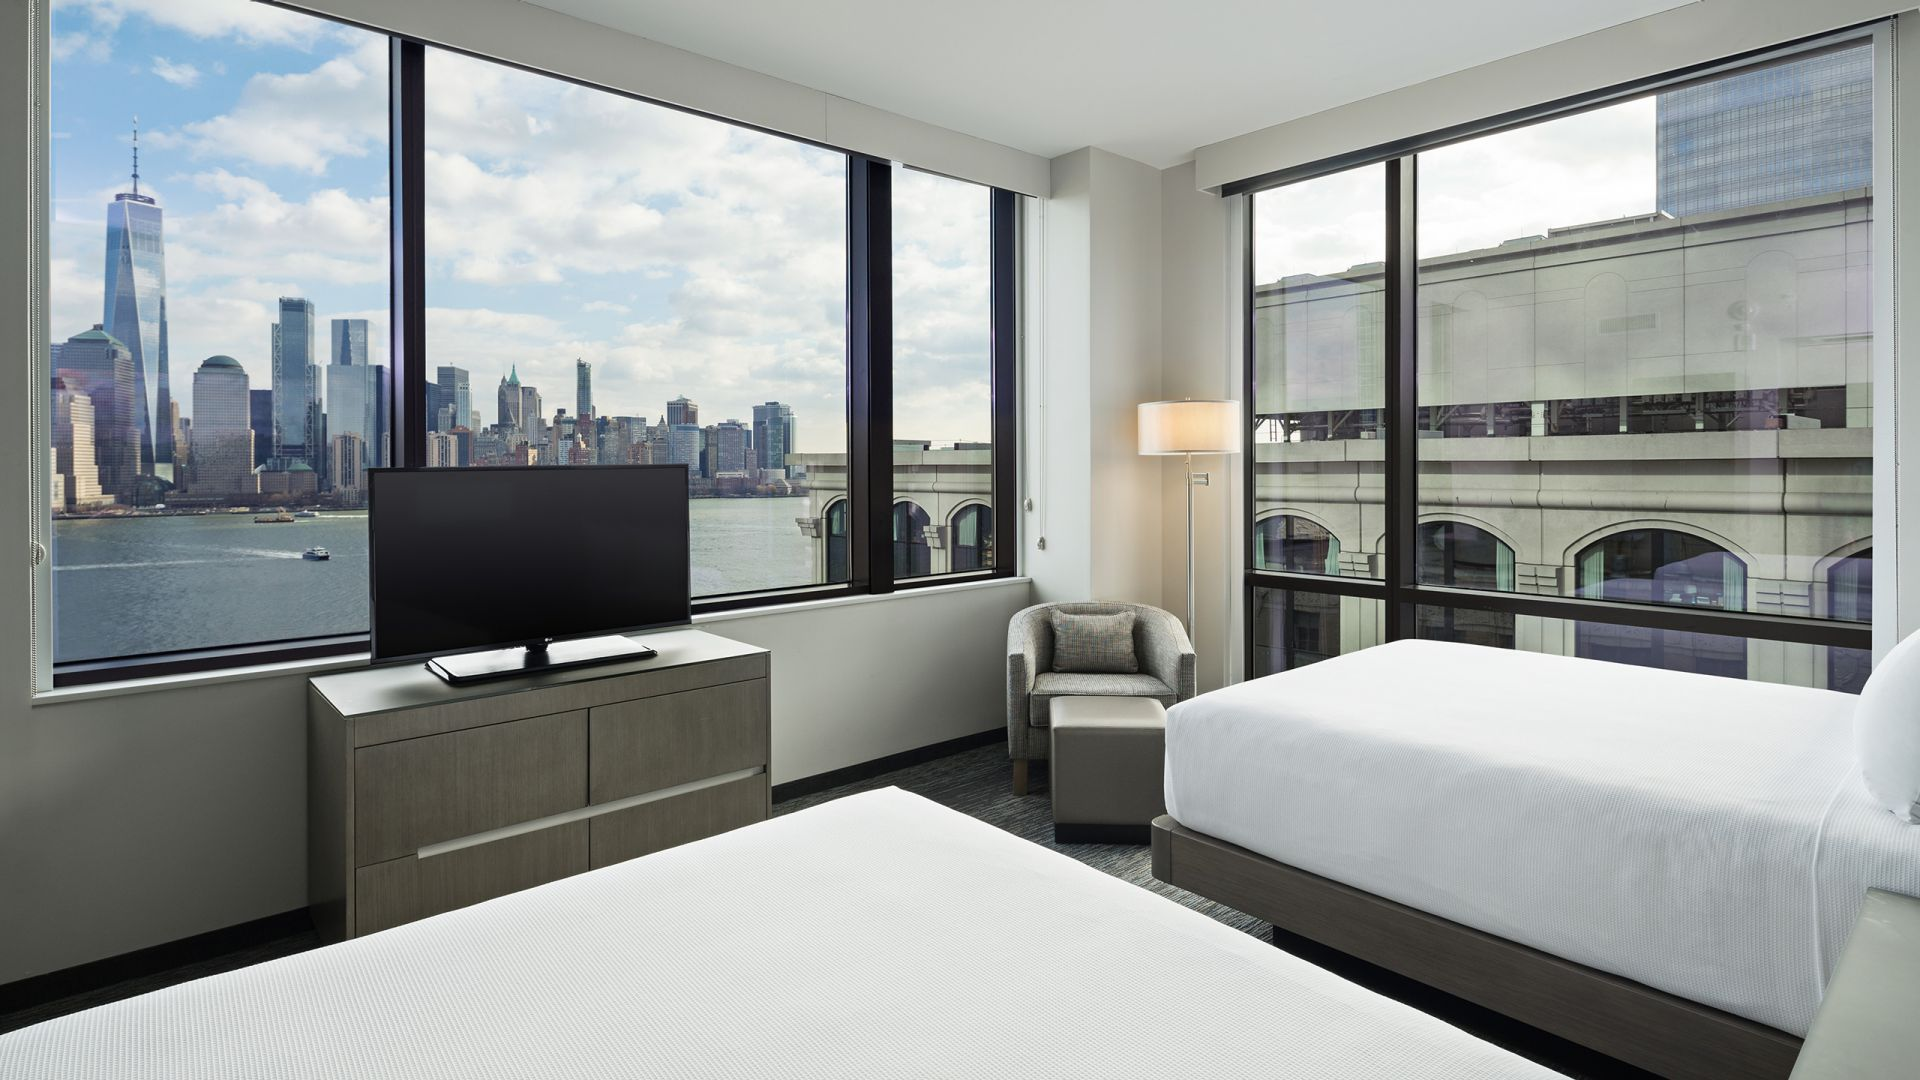 Hyatt House Jersey City Room View